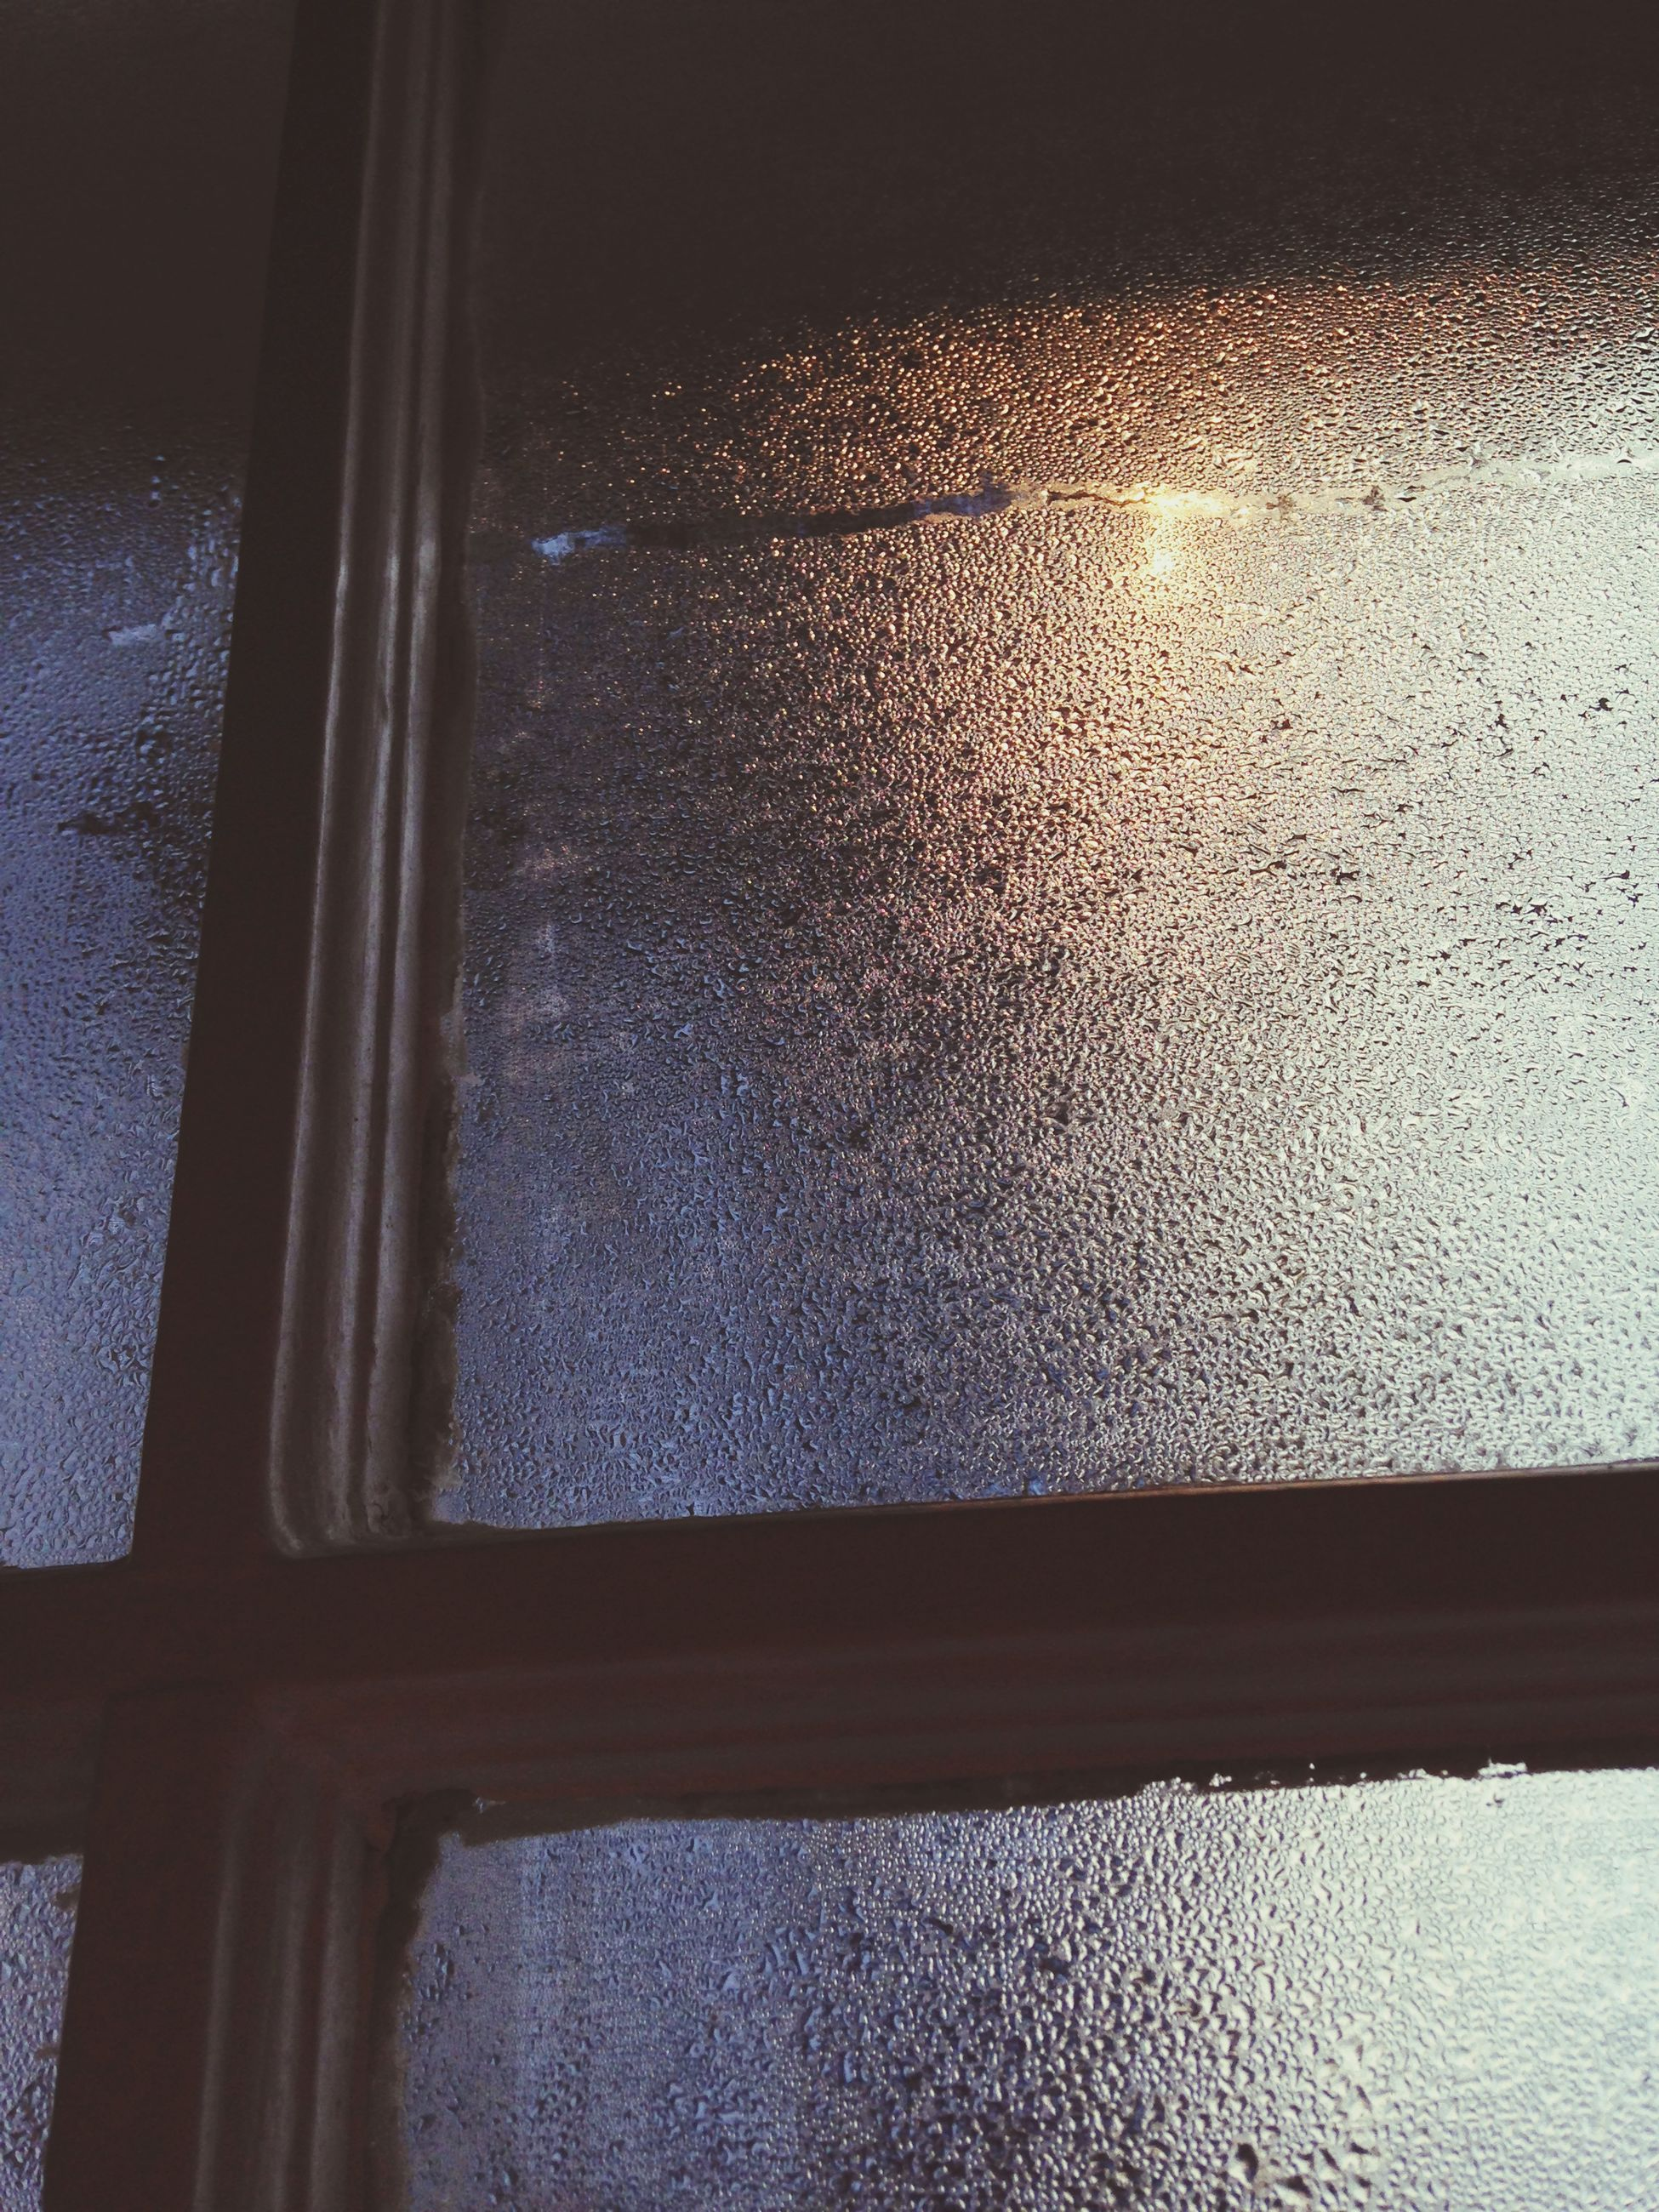 window, indoors, glass - material, transparent, full frame, close-up, drop, backgrounds, water, glass, wet, no people, reflection, pattern, detail, textured, rain, transportation, looking through window, raindrop